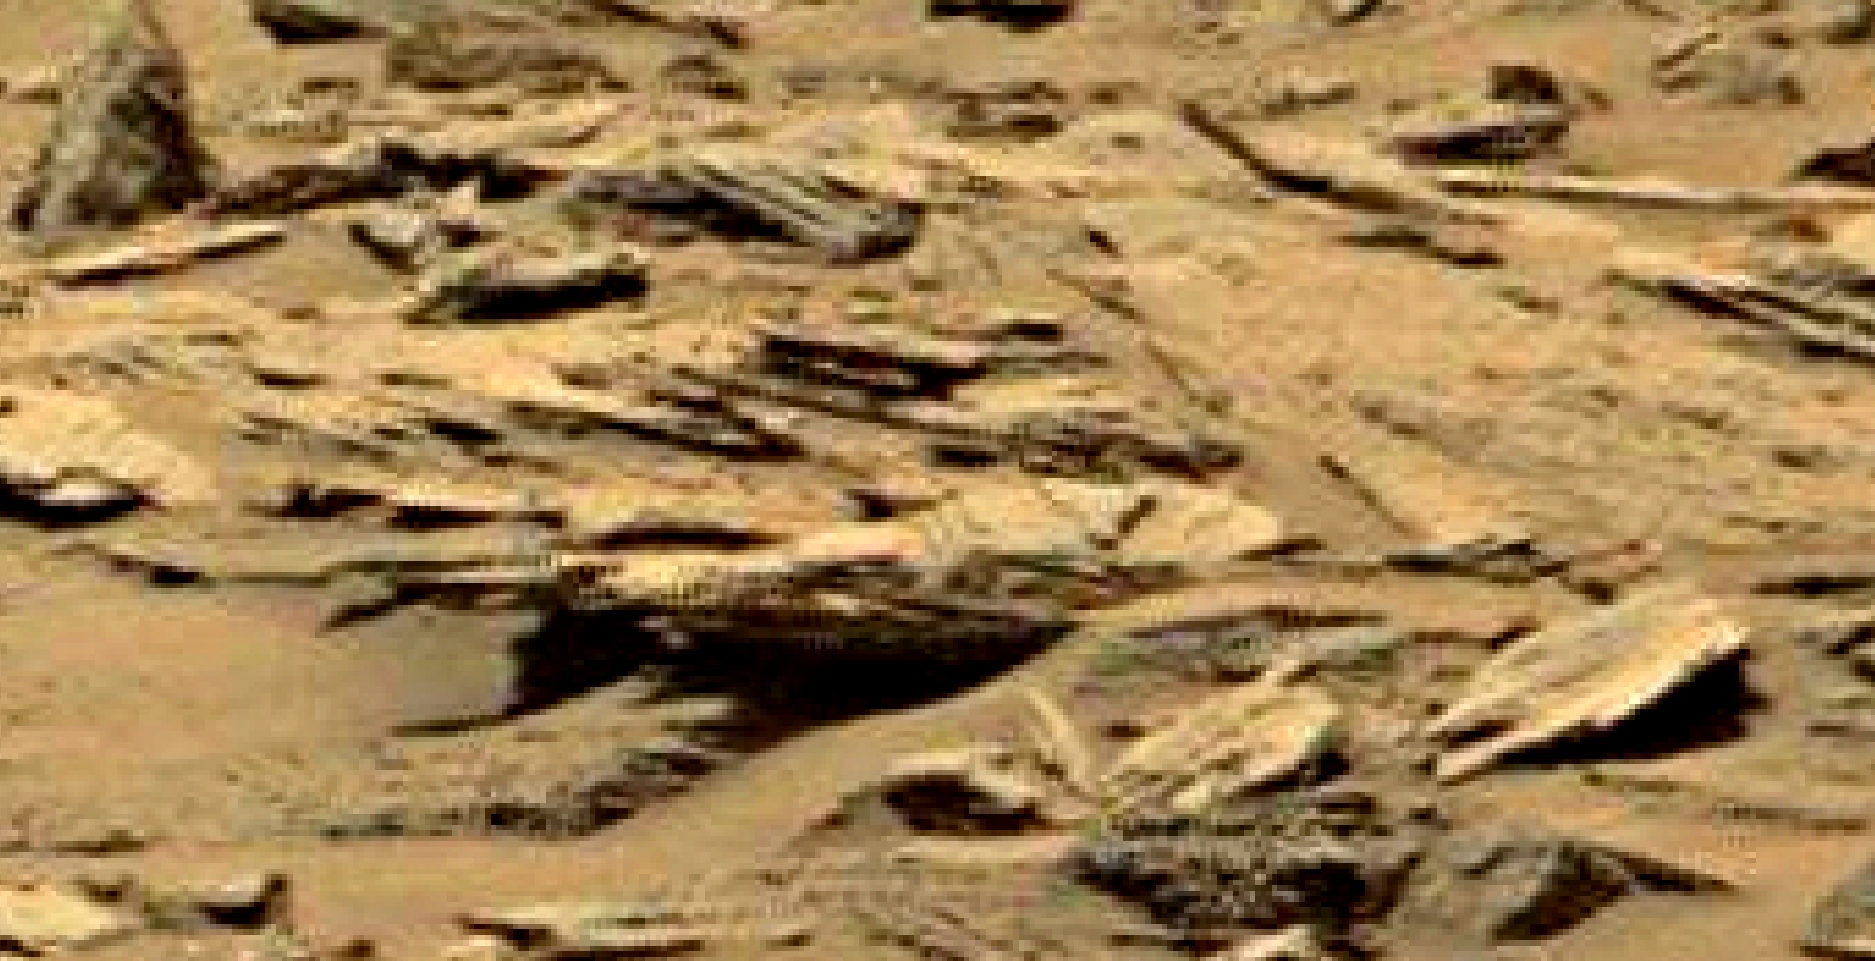 mars sol 1353 anomaly-artifacts 5 was life on mars